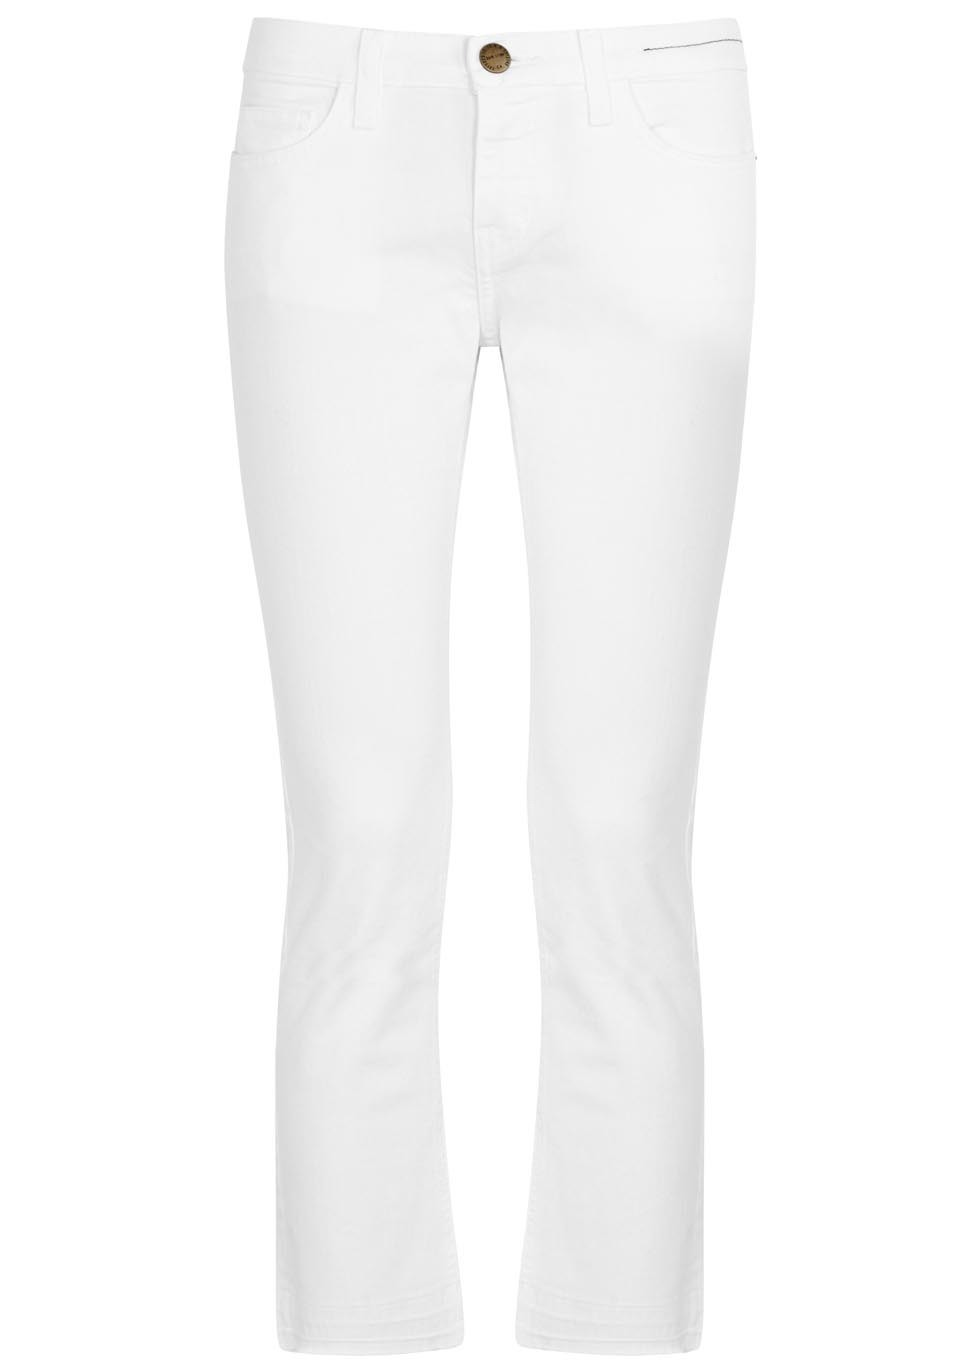 The Cropped Straight White Jeans - style: straight leg; pattern: plain; pocket detail: traditional 5 pocket; waist: mid/regular rise; predominant colour: white; occasions: casual; length: calf length; fibres: cotton - stretch; texture group: denim; pattern type: fabric; season: s/s 2016; wardrobe: highlight